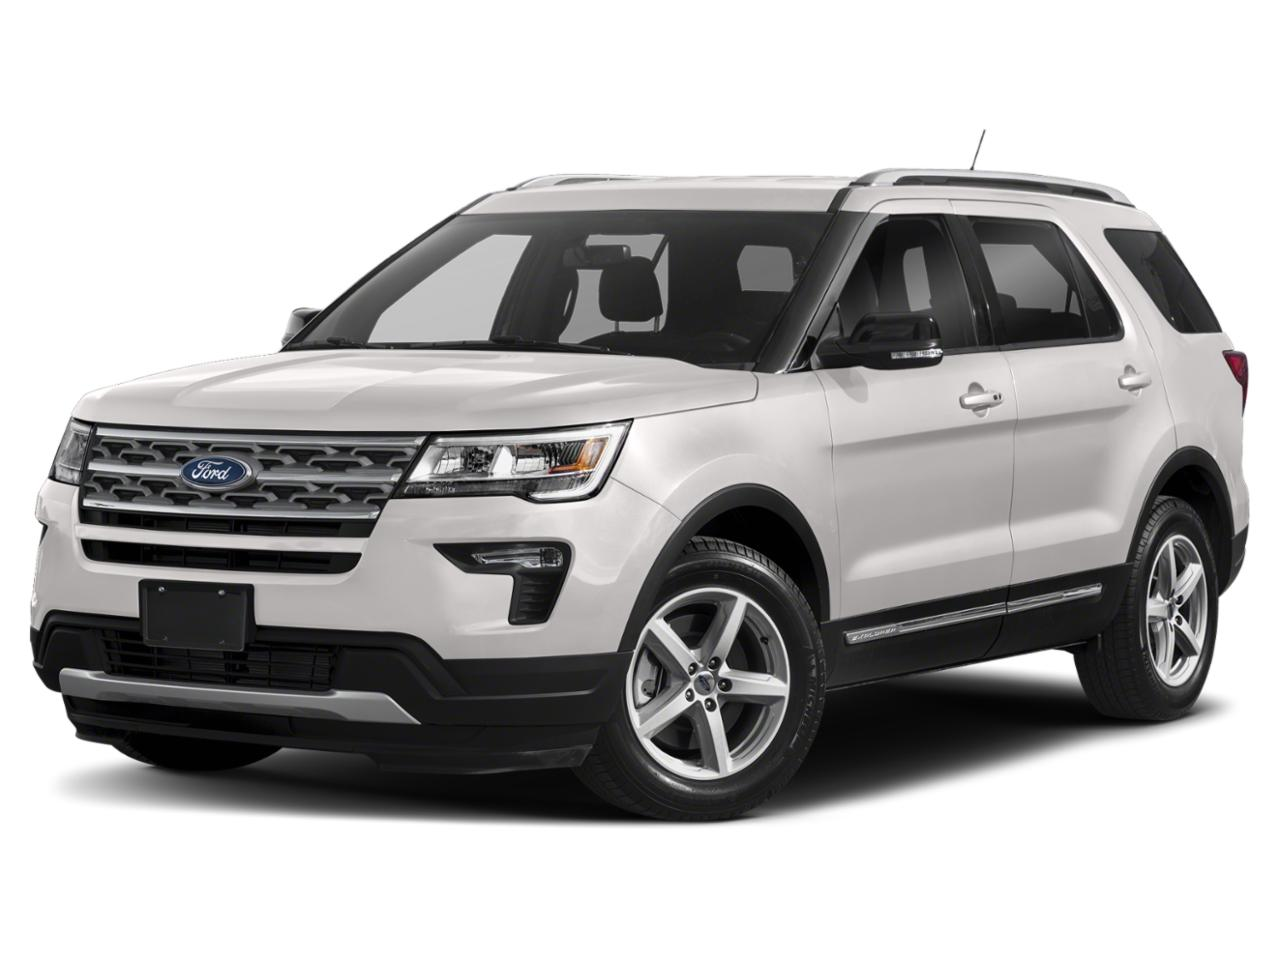 2019 Ford Explorer Vehicle Photo in Grapevine, TX 76051